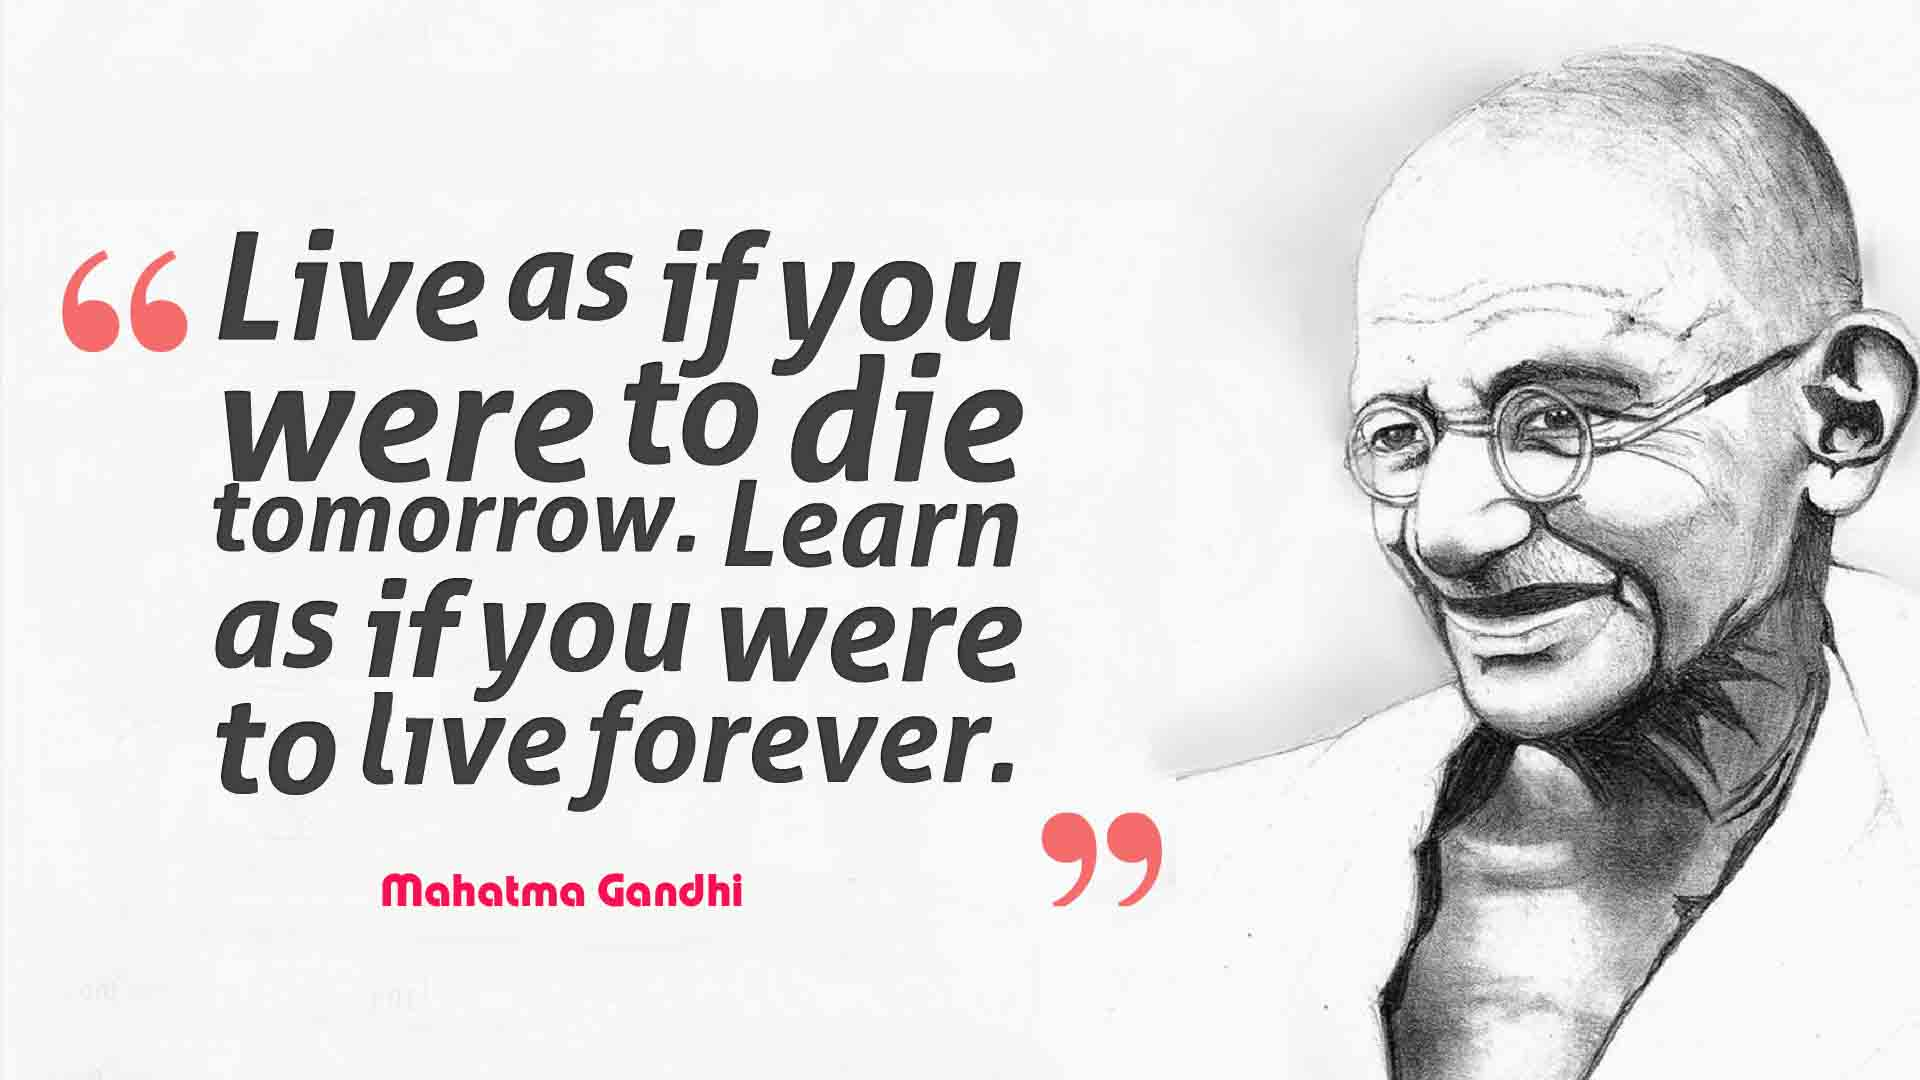 American Dream Essays Lessons To Learn From The Life Of Mahatma Gandhi Essay On Judaism also Compare And Contrast College Essay Examples Gandhi Essay Mahatma Gandhi Short Essay Words Google Docs Lessons To  Strict Liability Essay